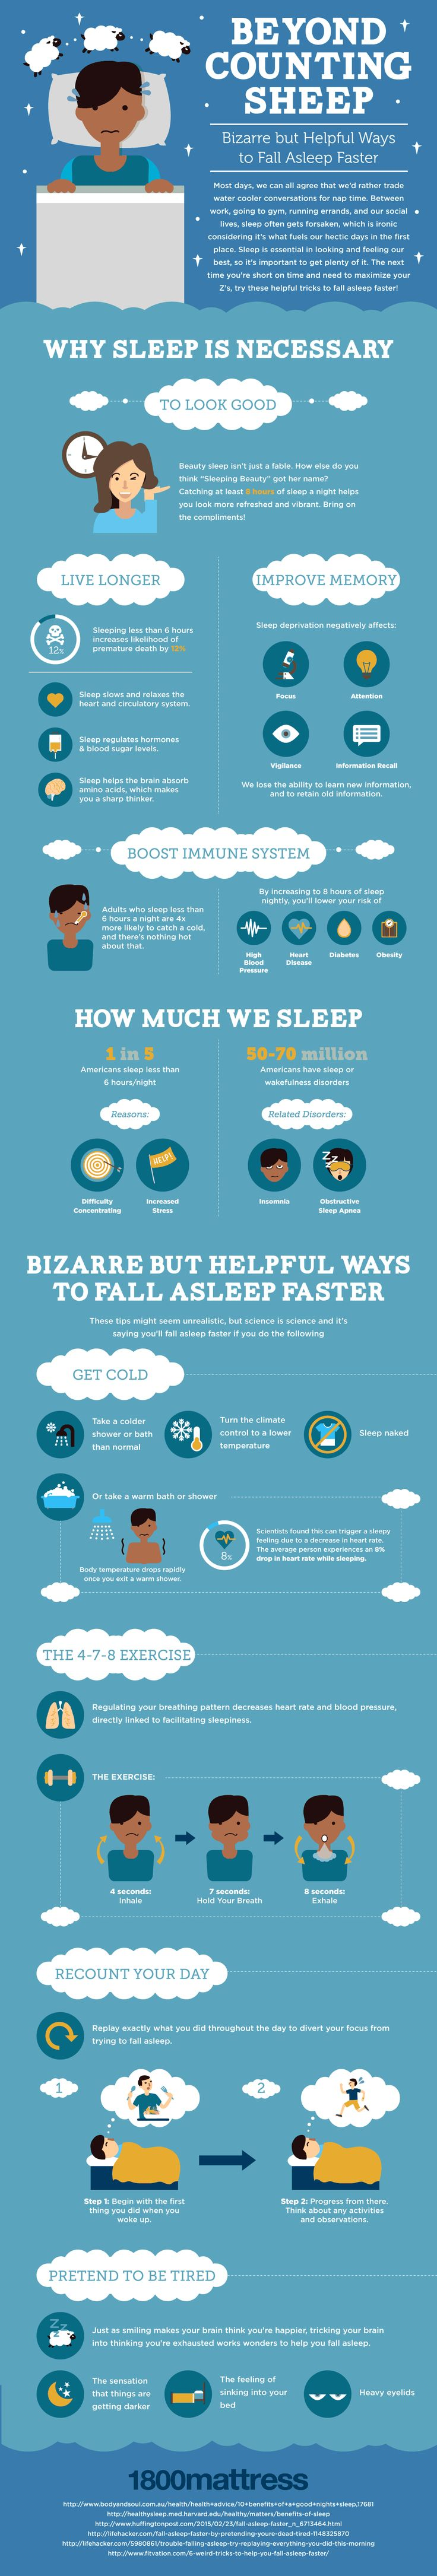 Beyond Counting Sheep #Infographic #Health #Sleep